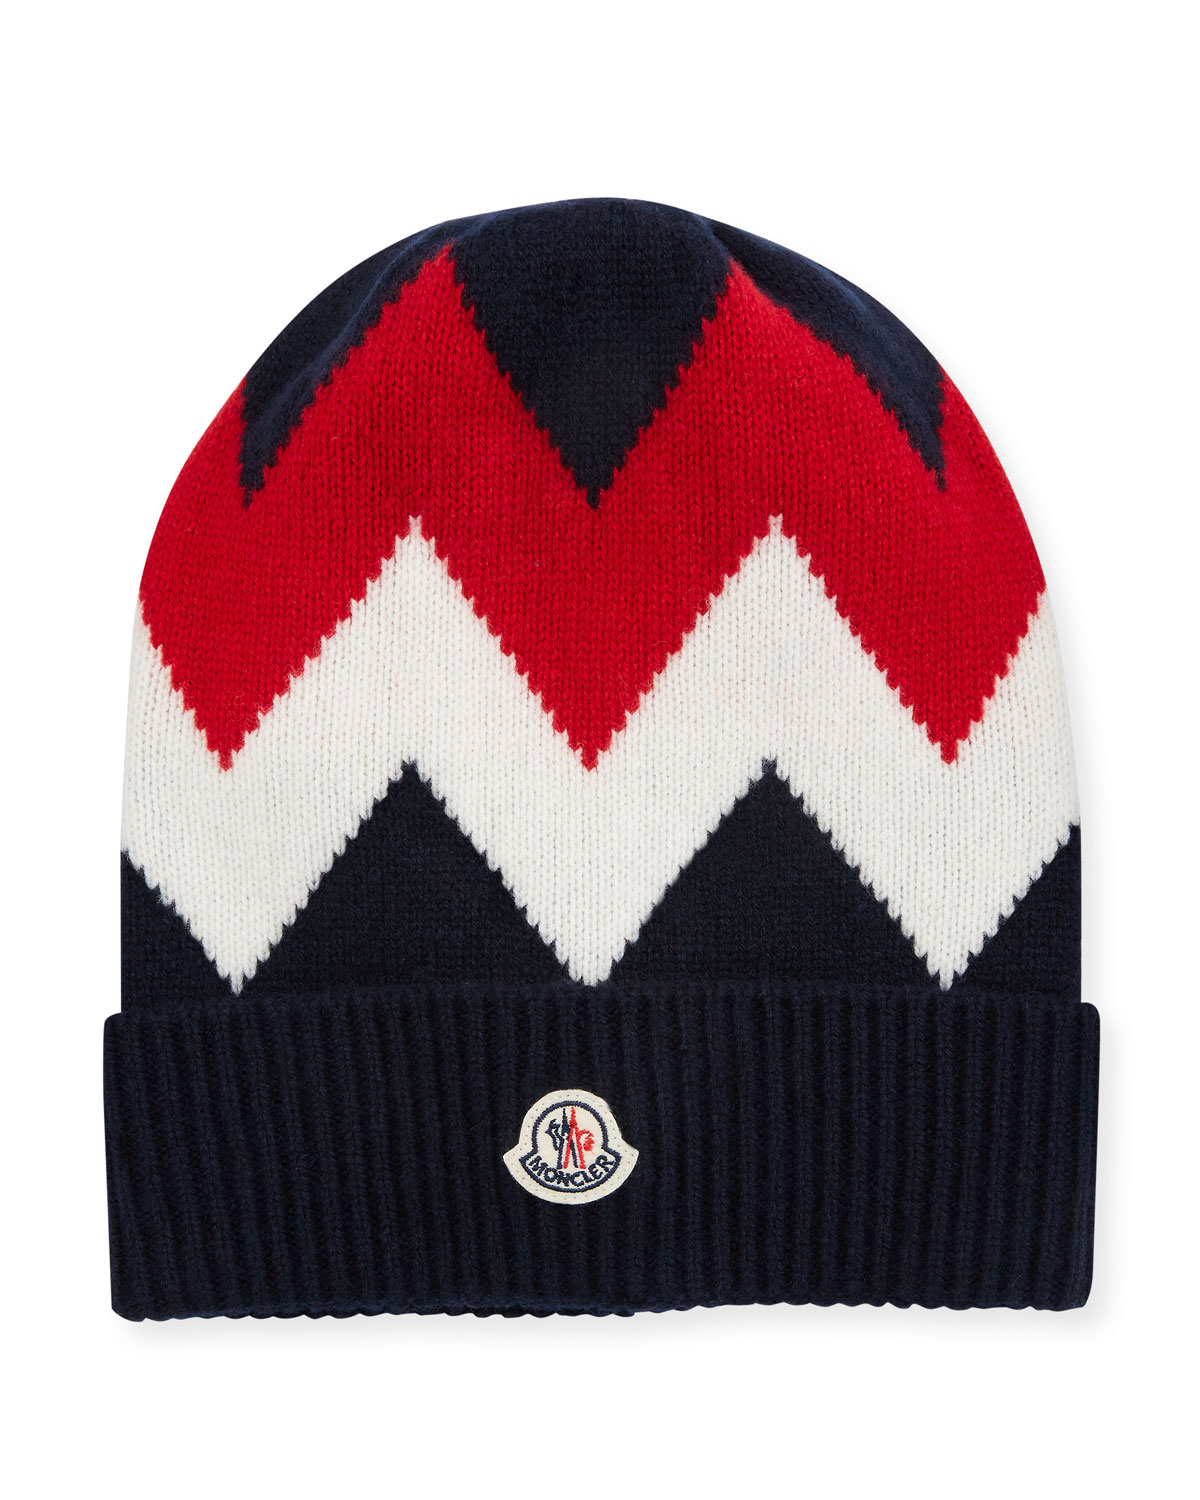 9ecfe664532 Moncler Men s Berretto Tricot Beanie Hat